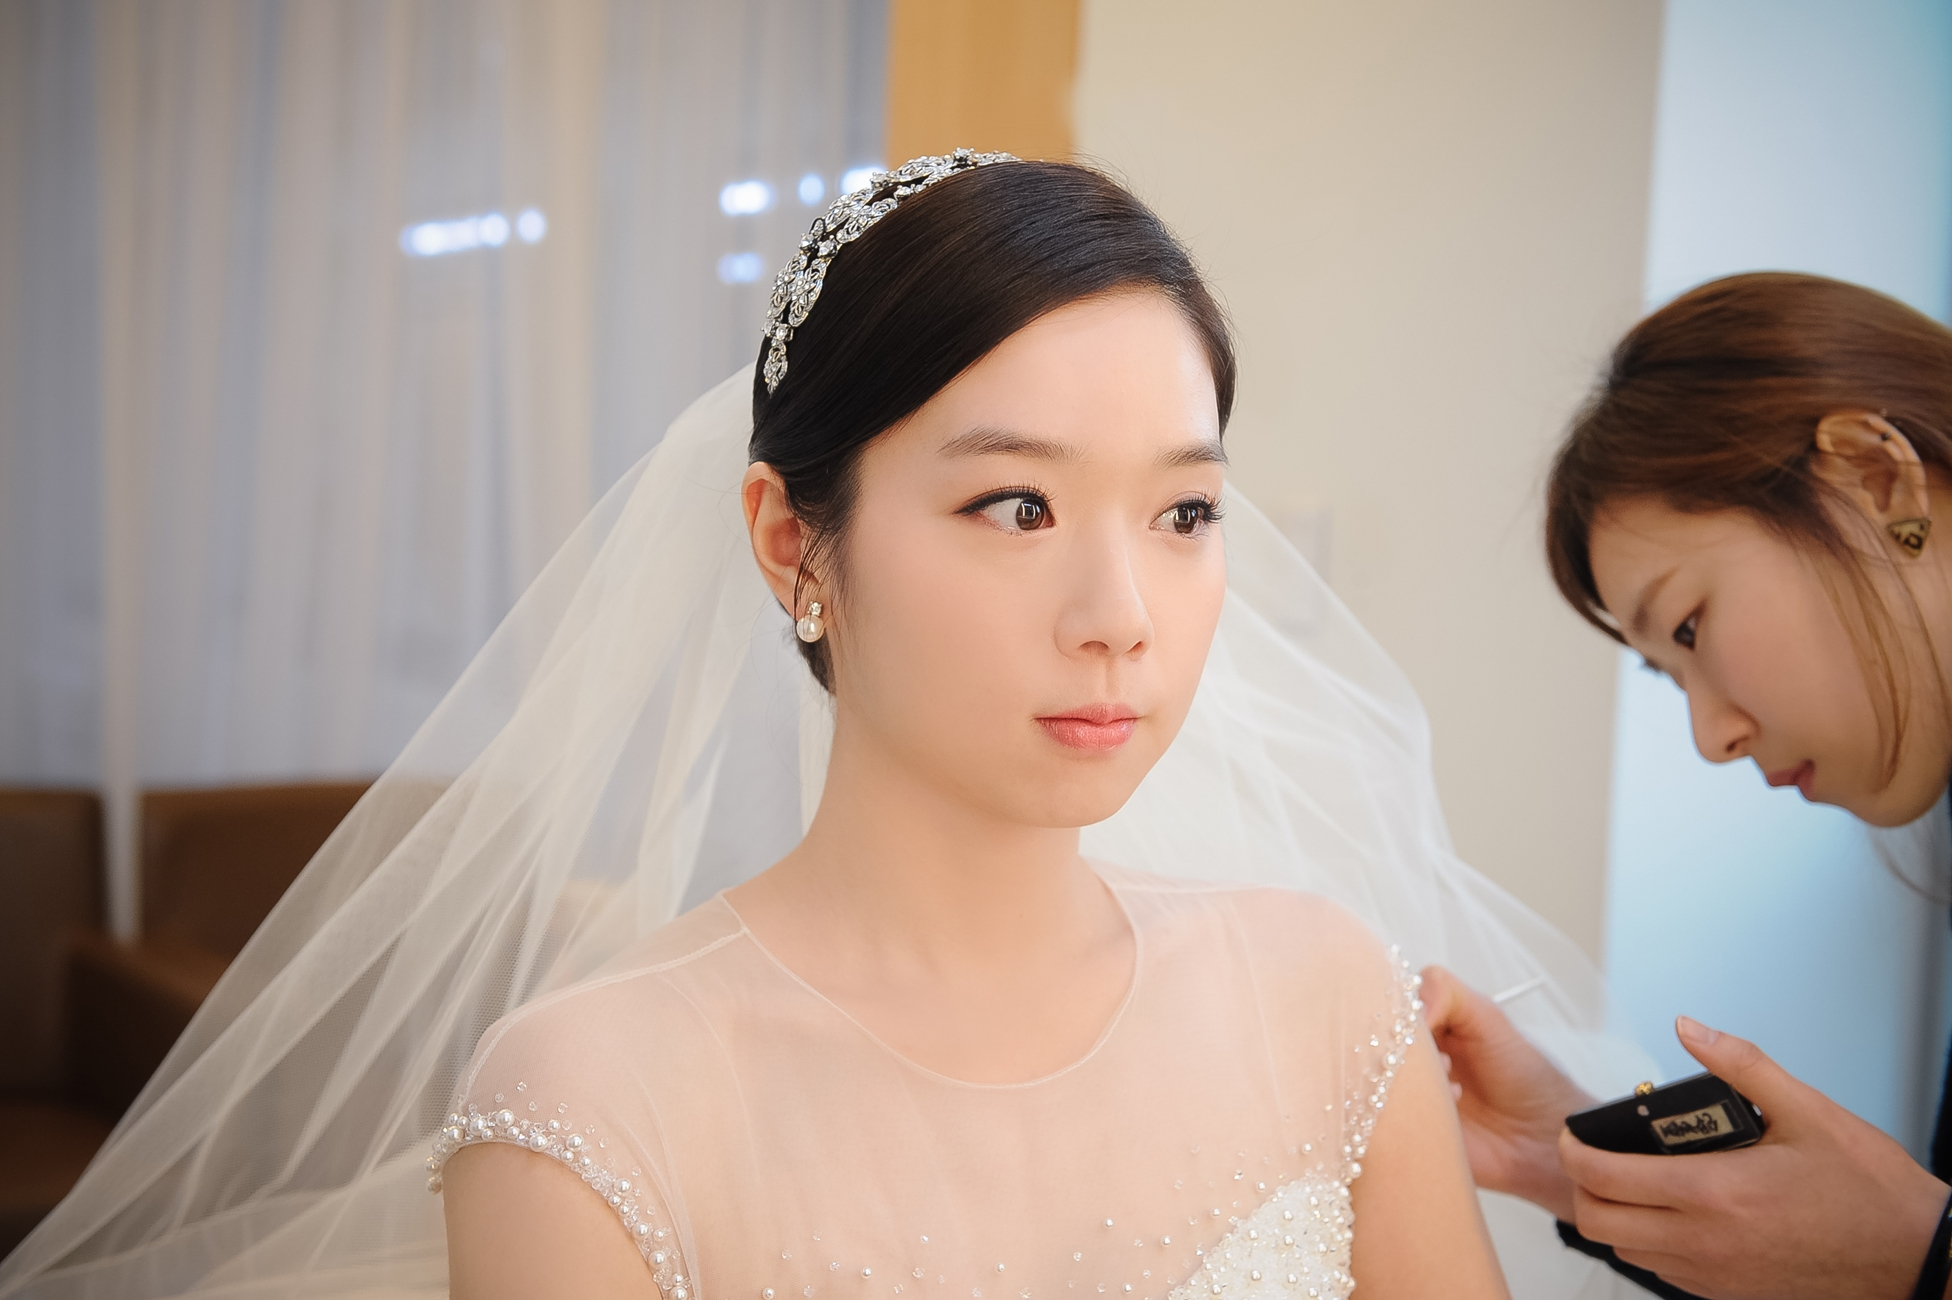 Image via kimchungkyung.iwedding.co.kr